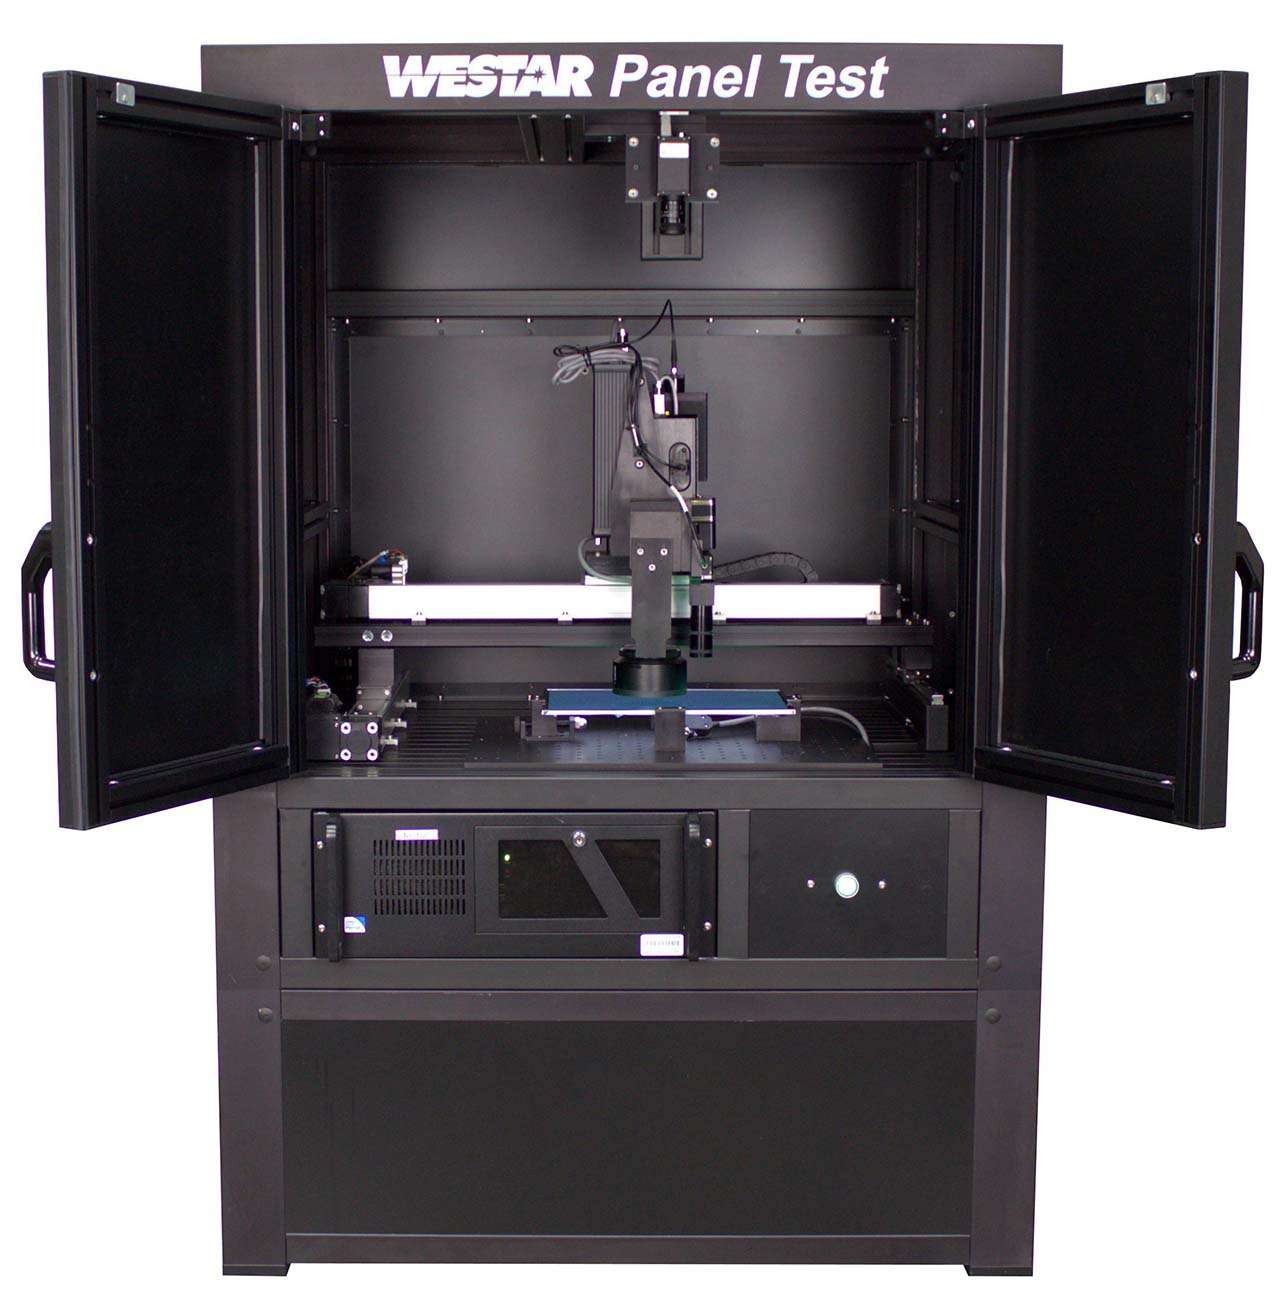 Display Optical Measurement System - PanelTest